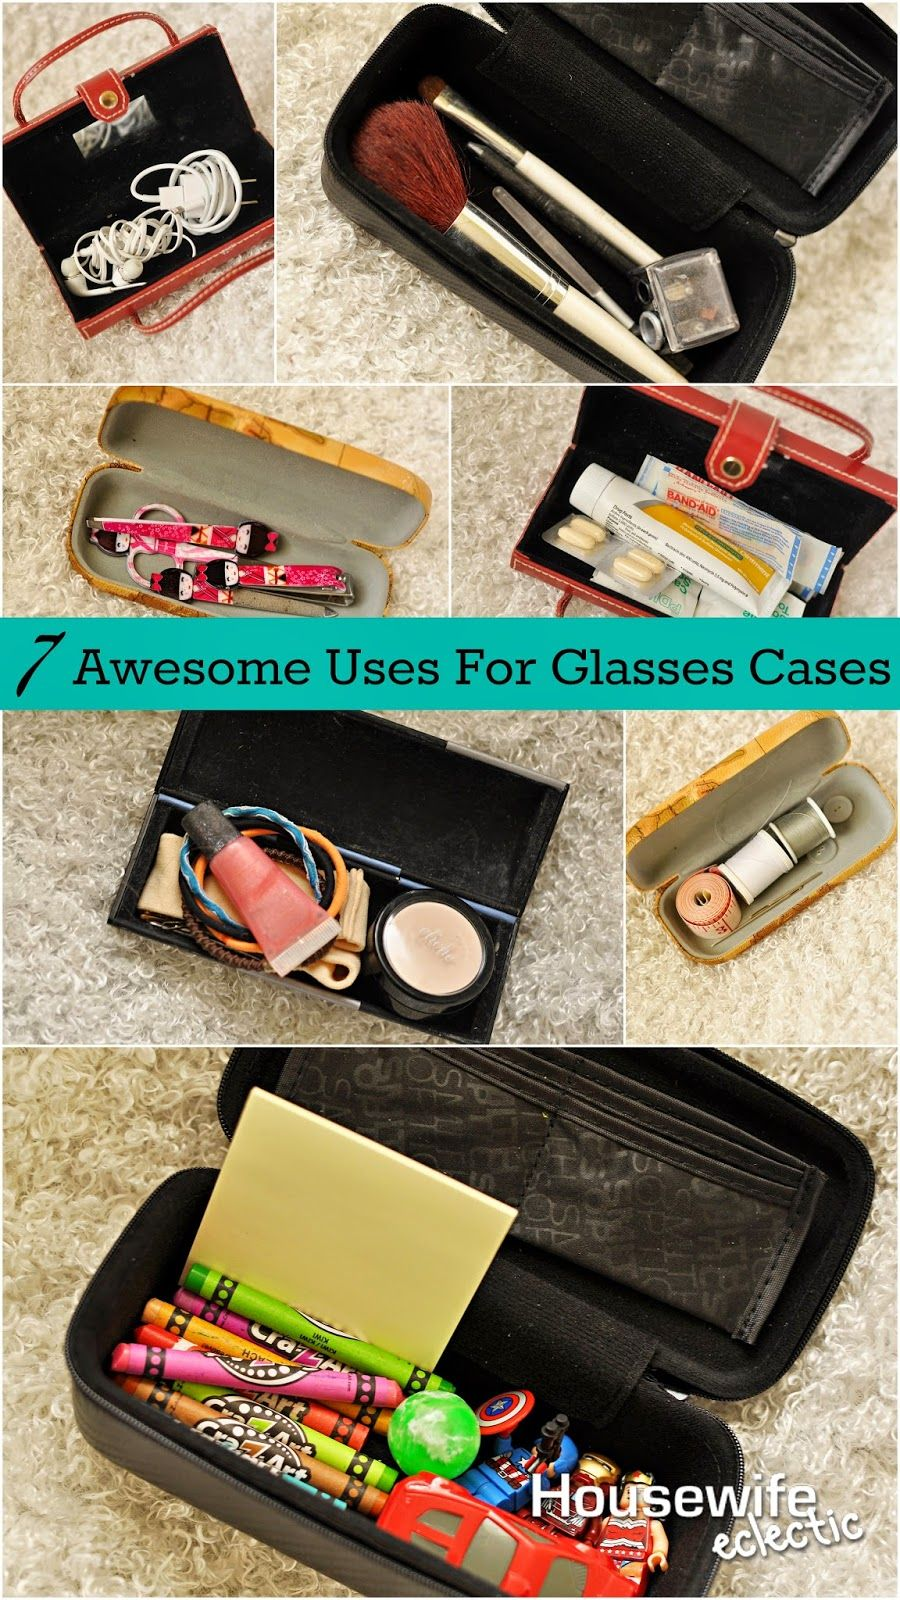 387b0e28919 Housewife Eclectic  7 Awesome Uses For Glasses Cases